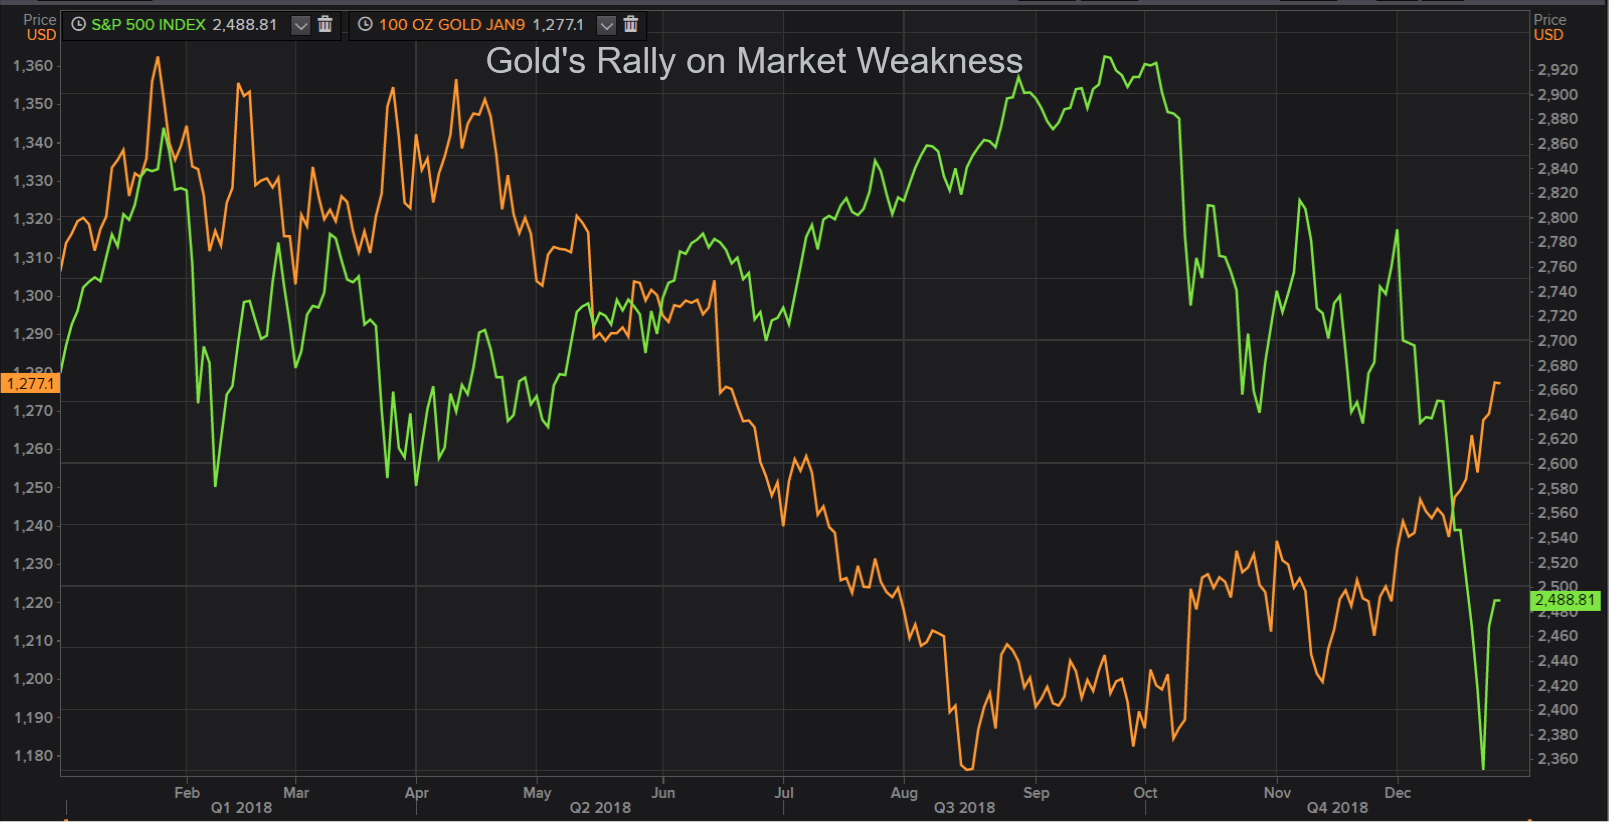 Gold's Rally on Market Weakness